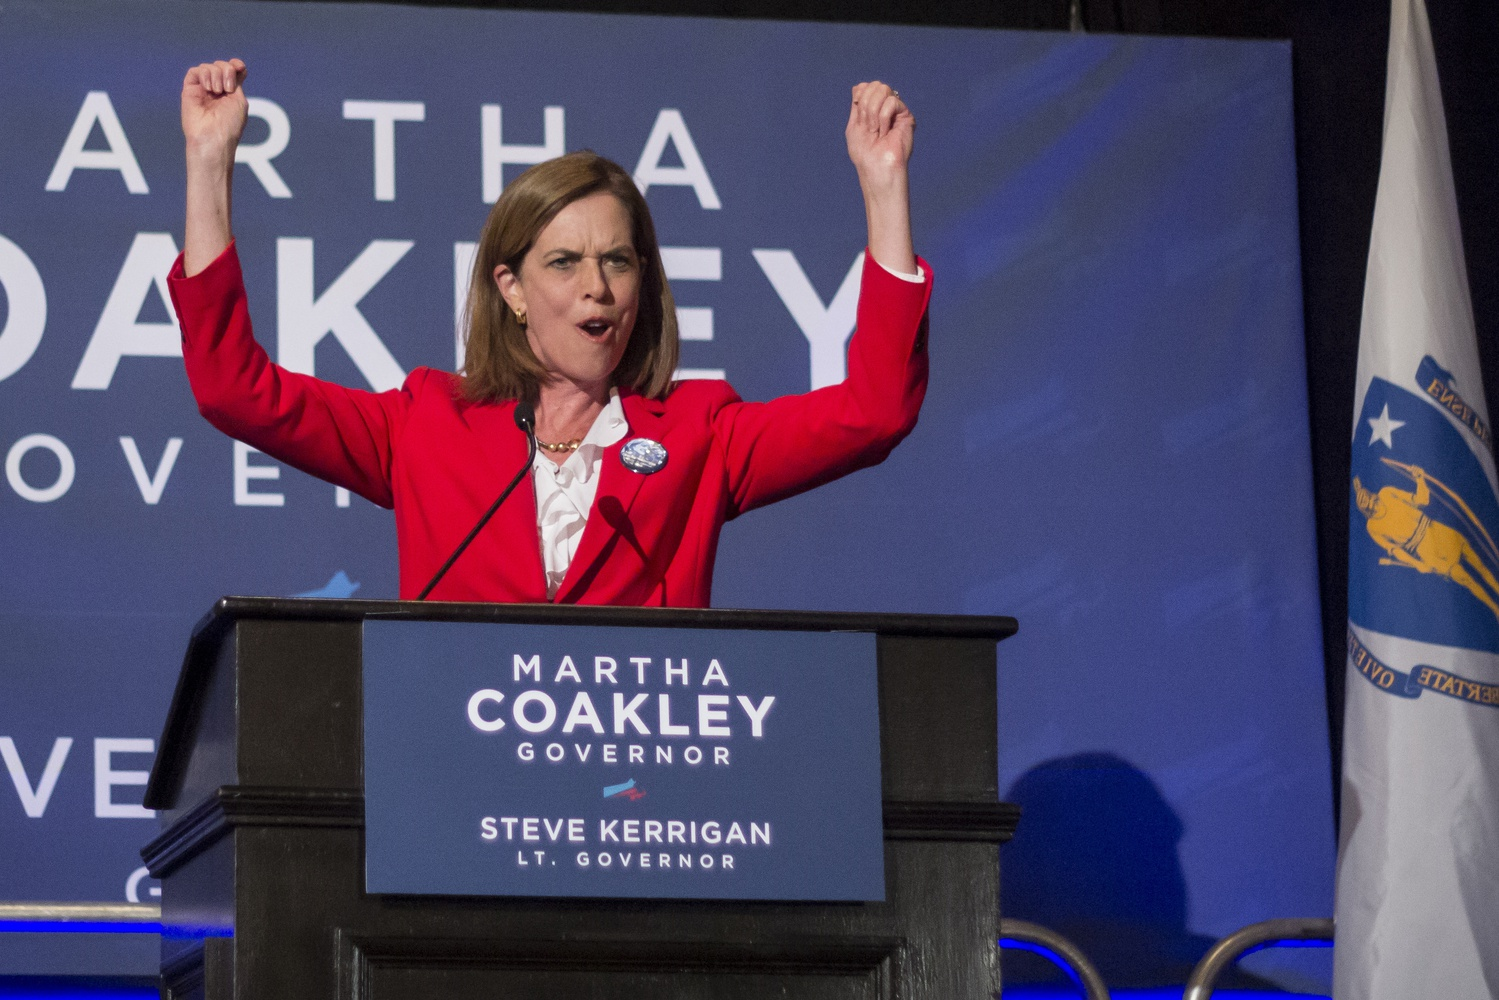 U.S. Rep. Katherine M. Clark rallies up Coakley supporters after preliminary results showed the Democratic candidate taking the lead.